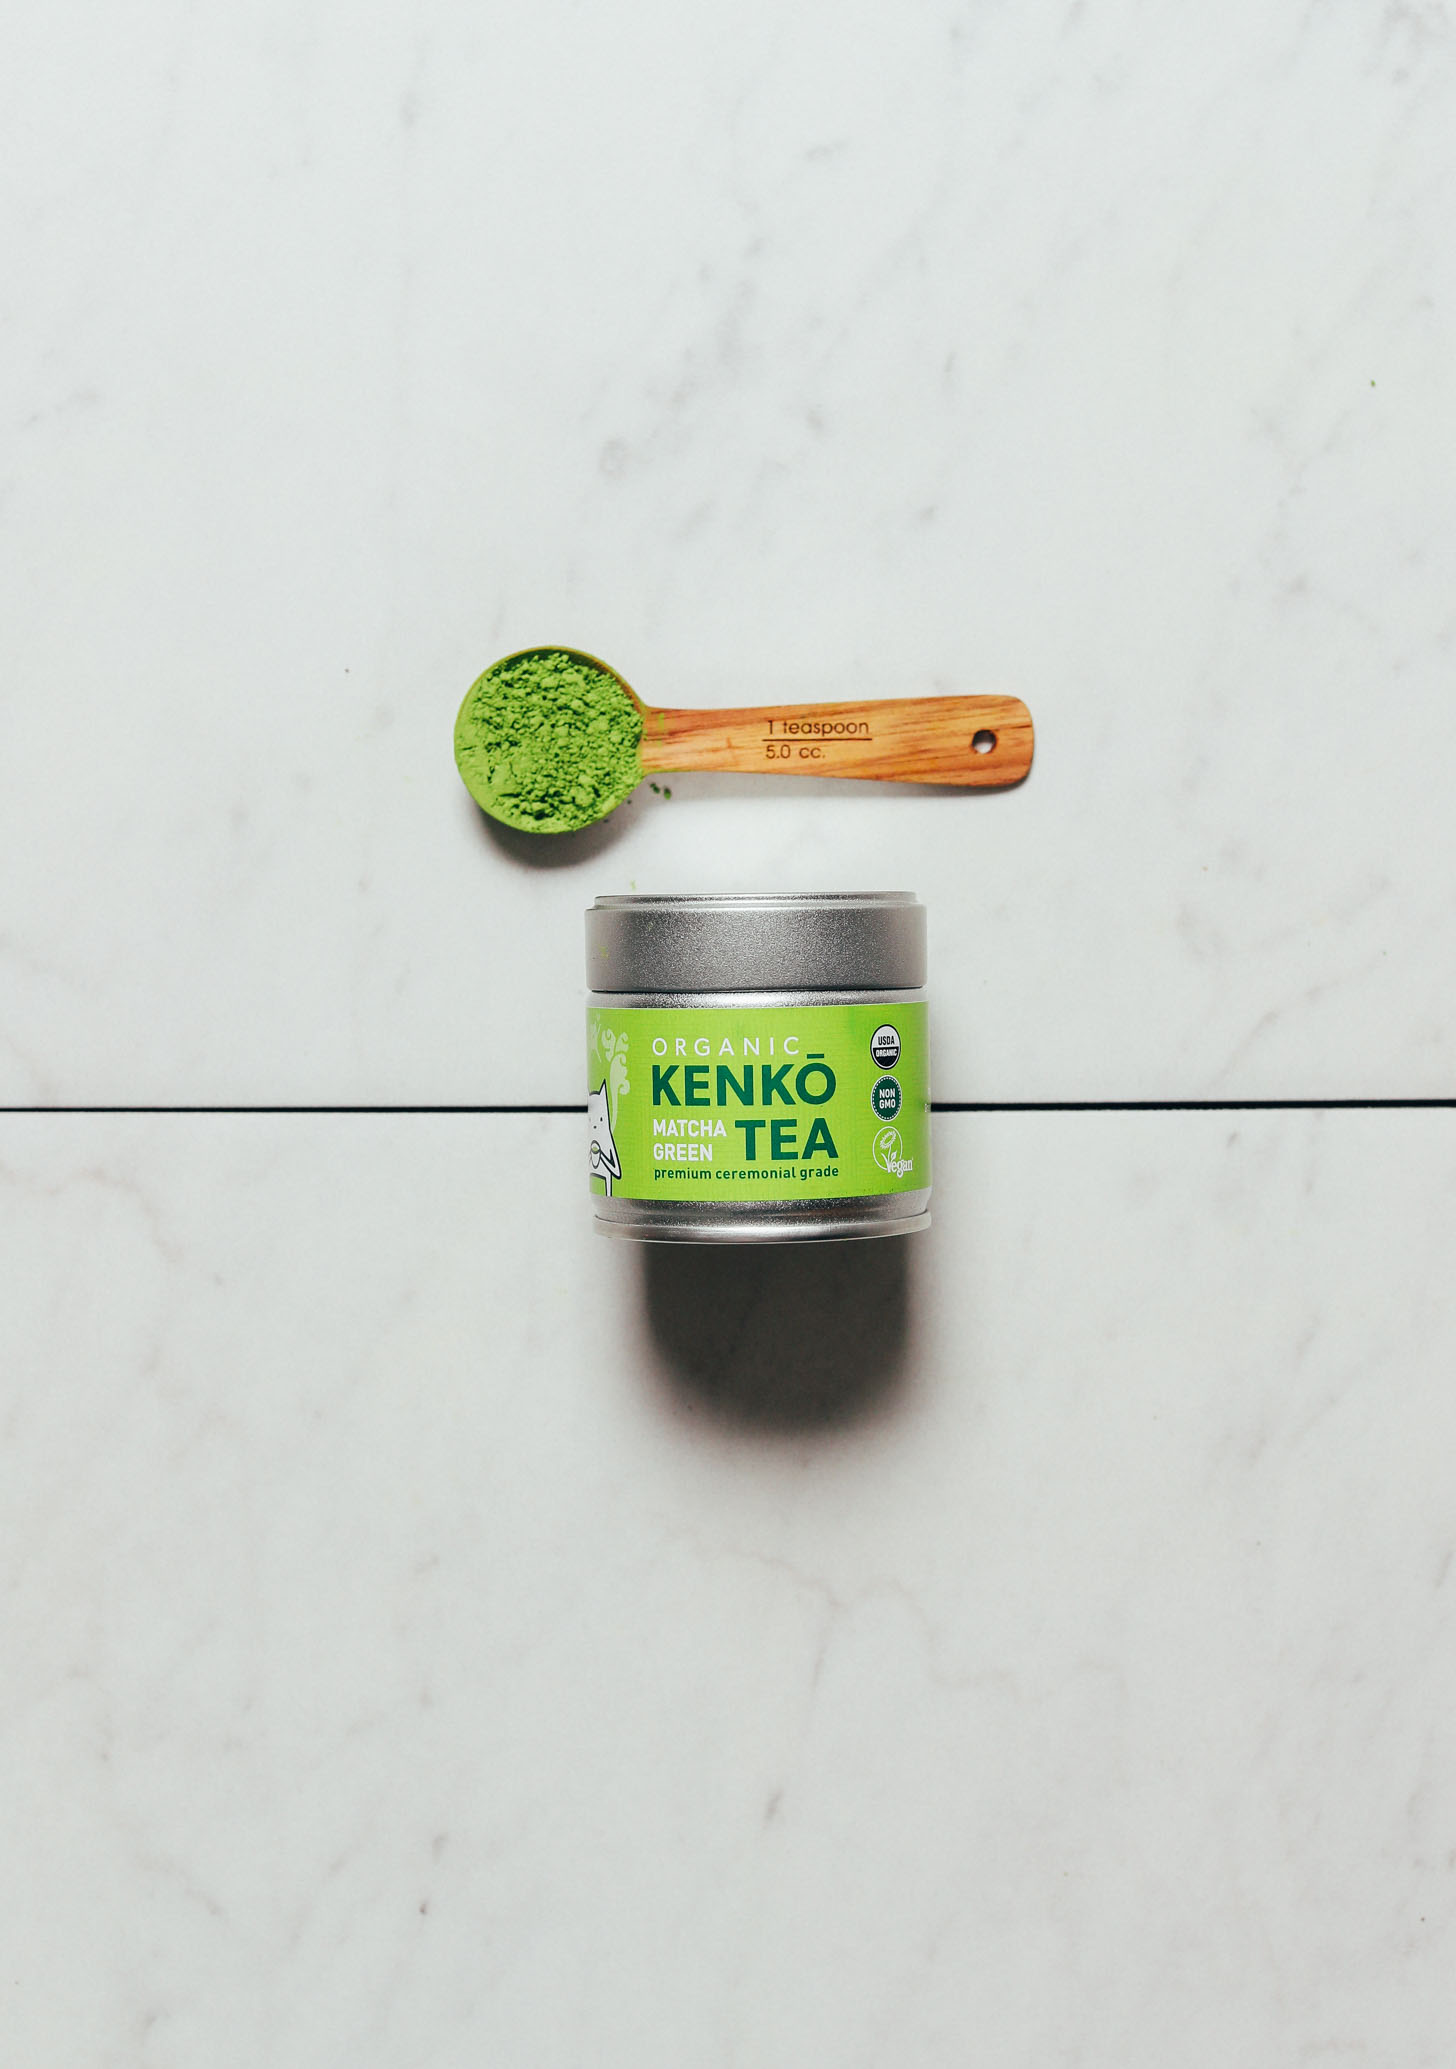 Spoon and jar of Kenko ceremonial matcha for our review of matcha brands